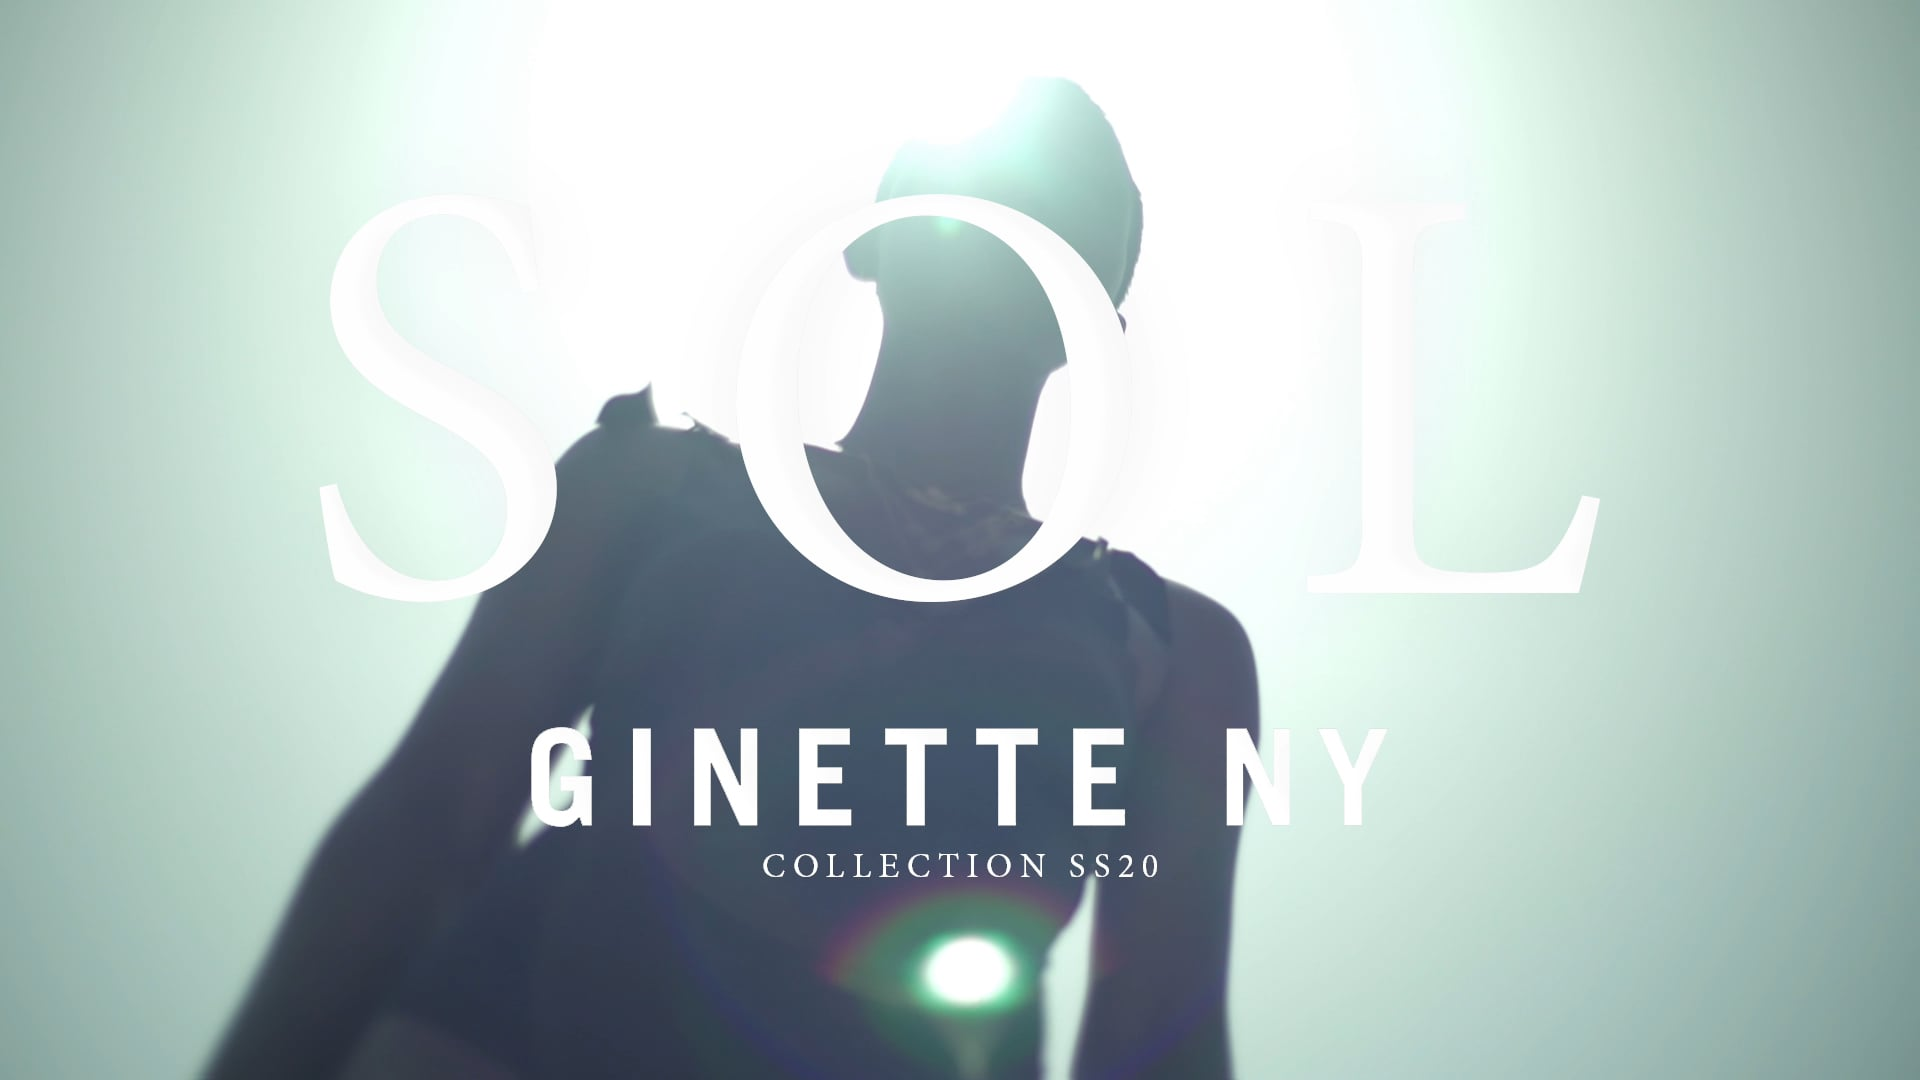 GINETTE NY SOL 2